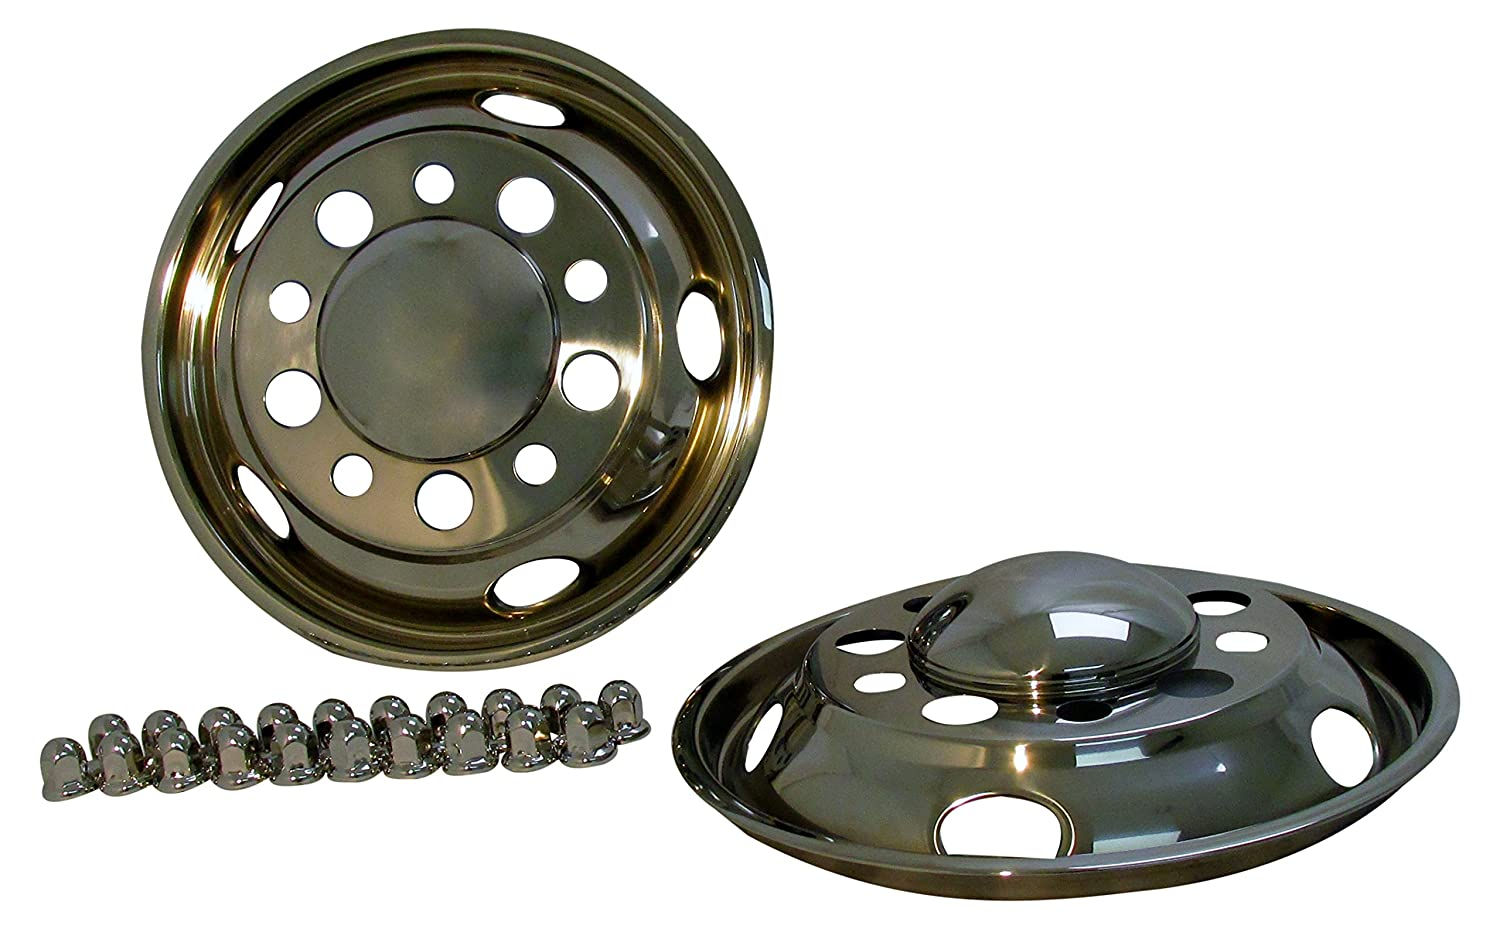 Kaper II SS-2252FC-825 Polished Stainless Steel Front Wheel Simulator Set 2 Pack